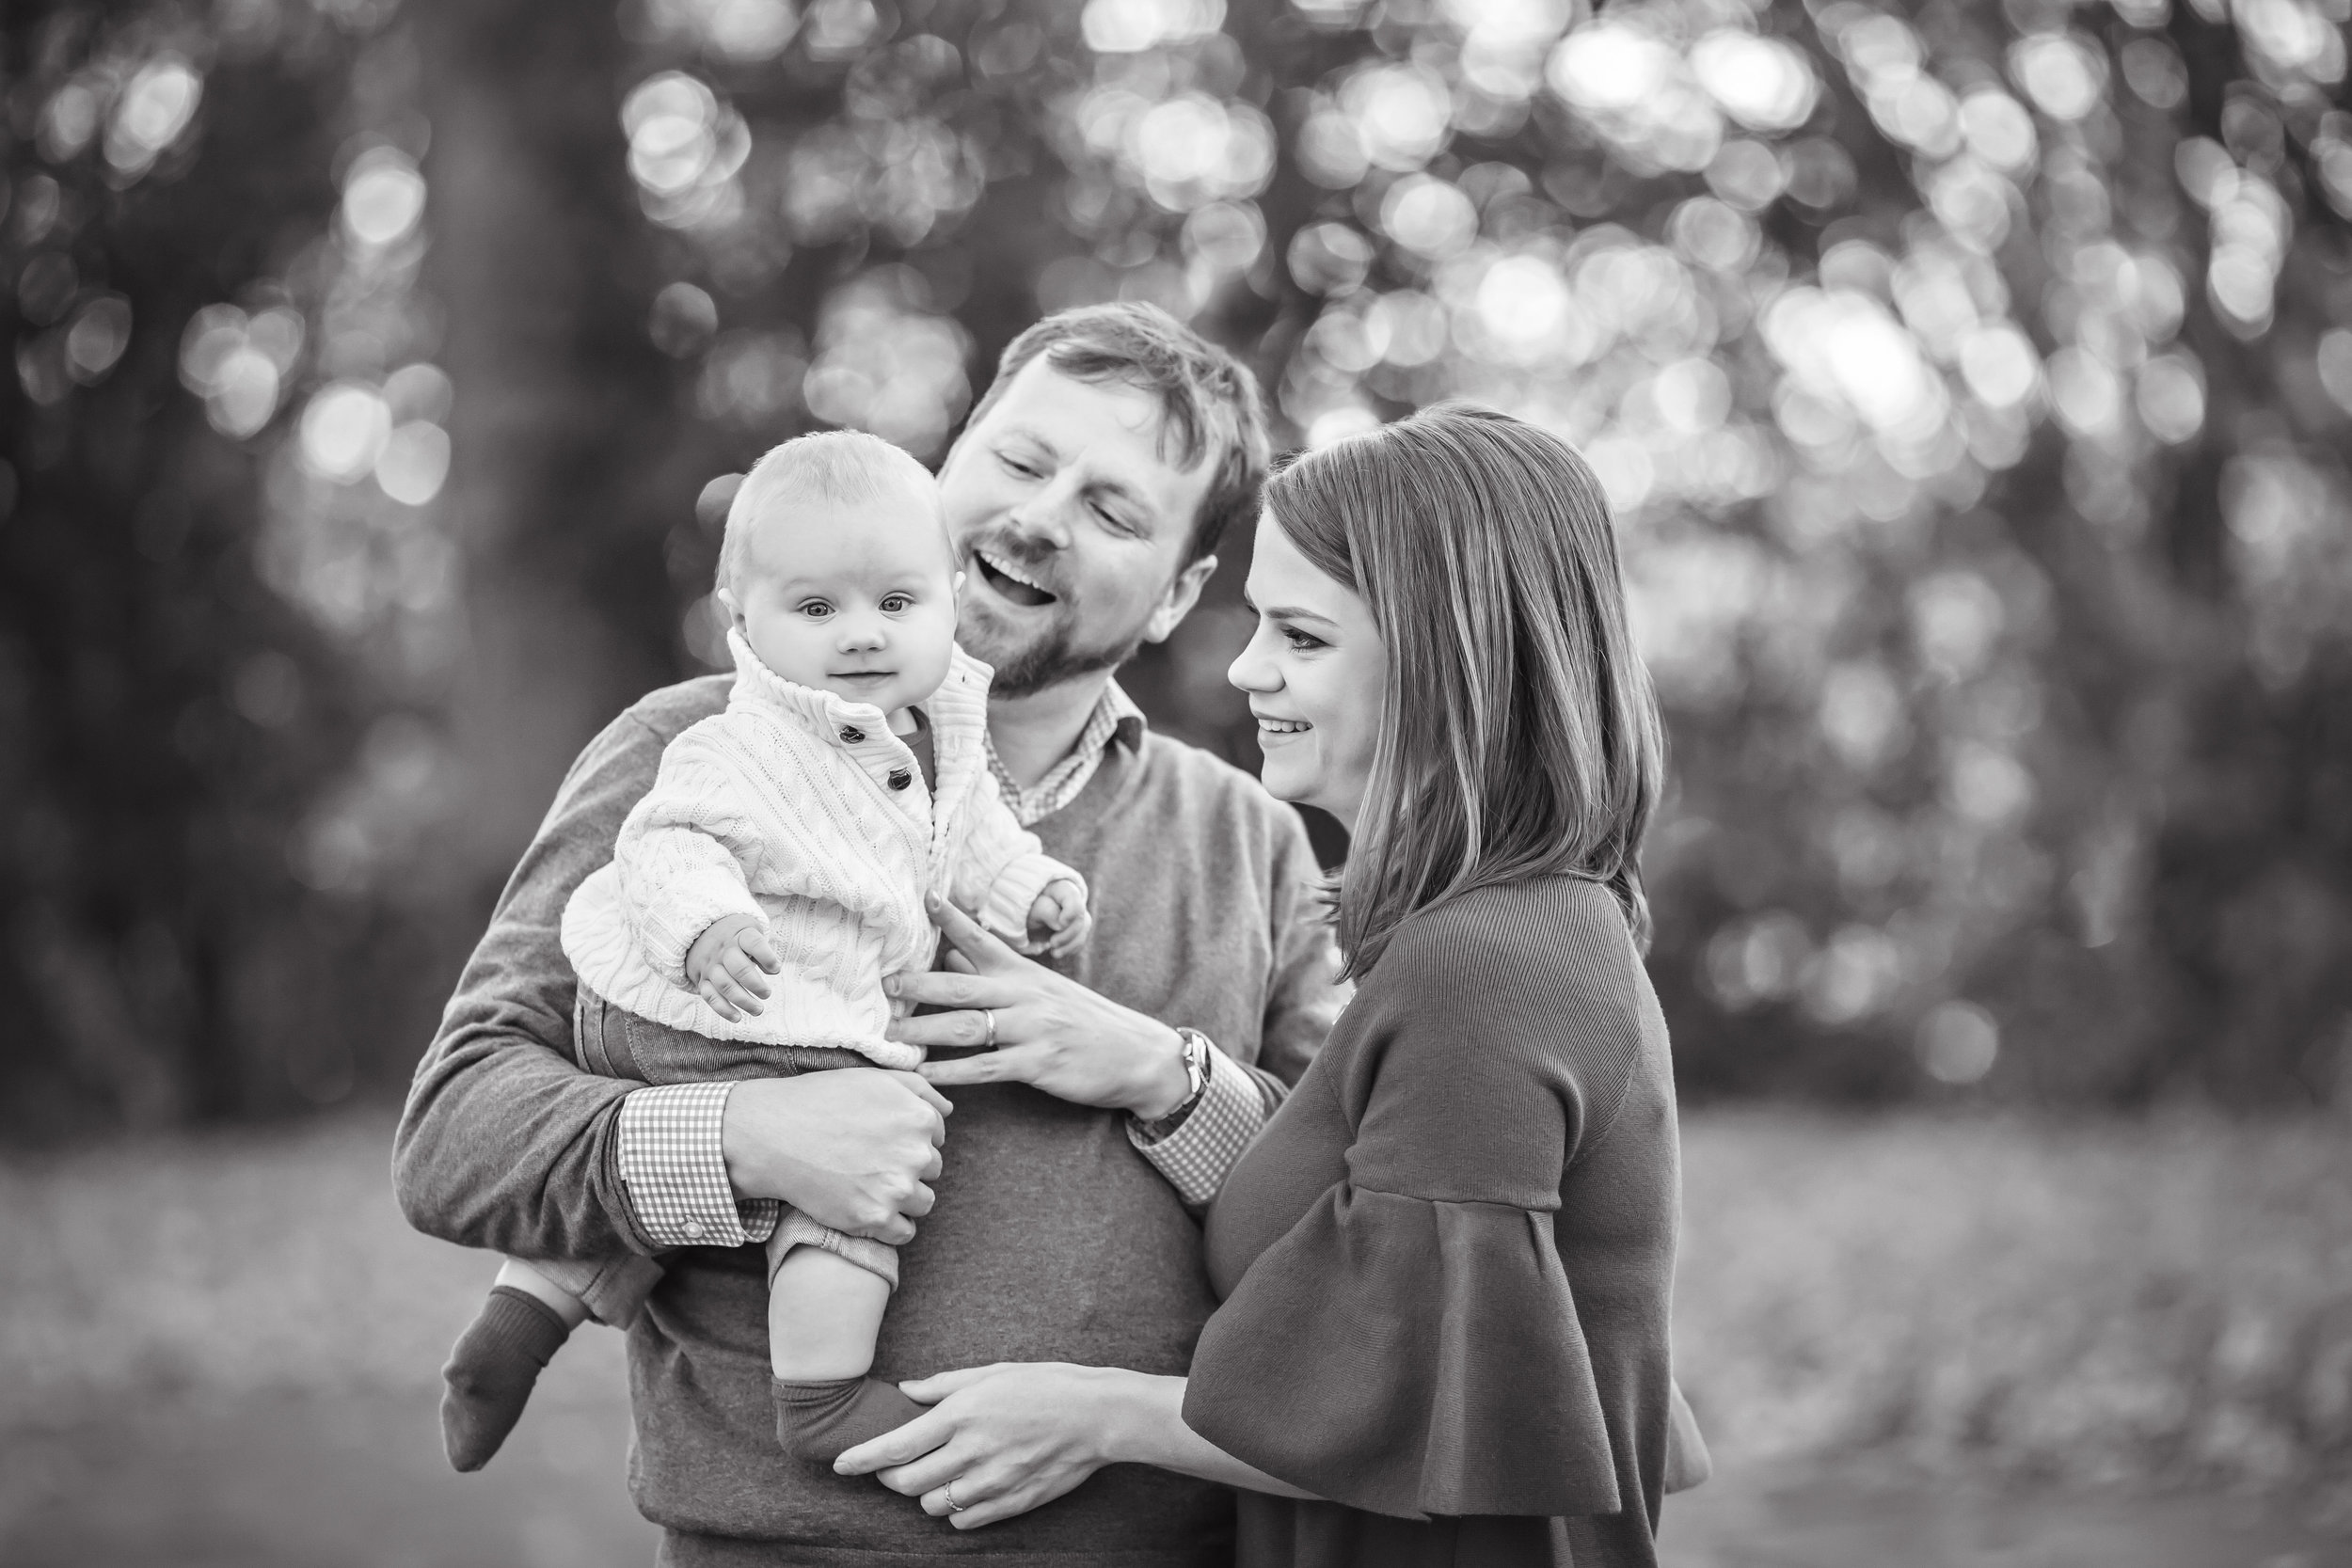 ANDERSON_FAMILY_BW_HIRES-39.jpg